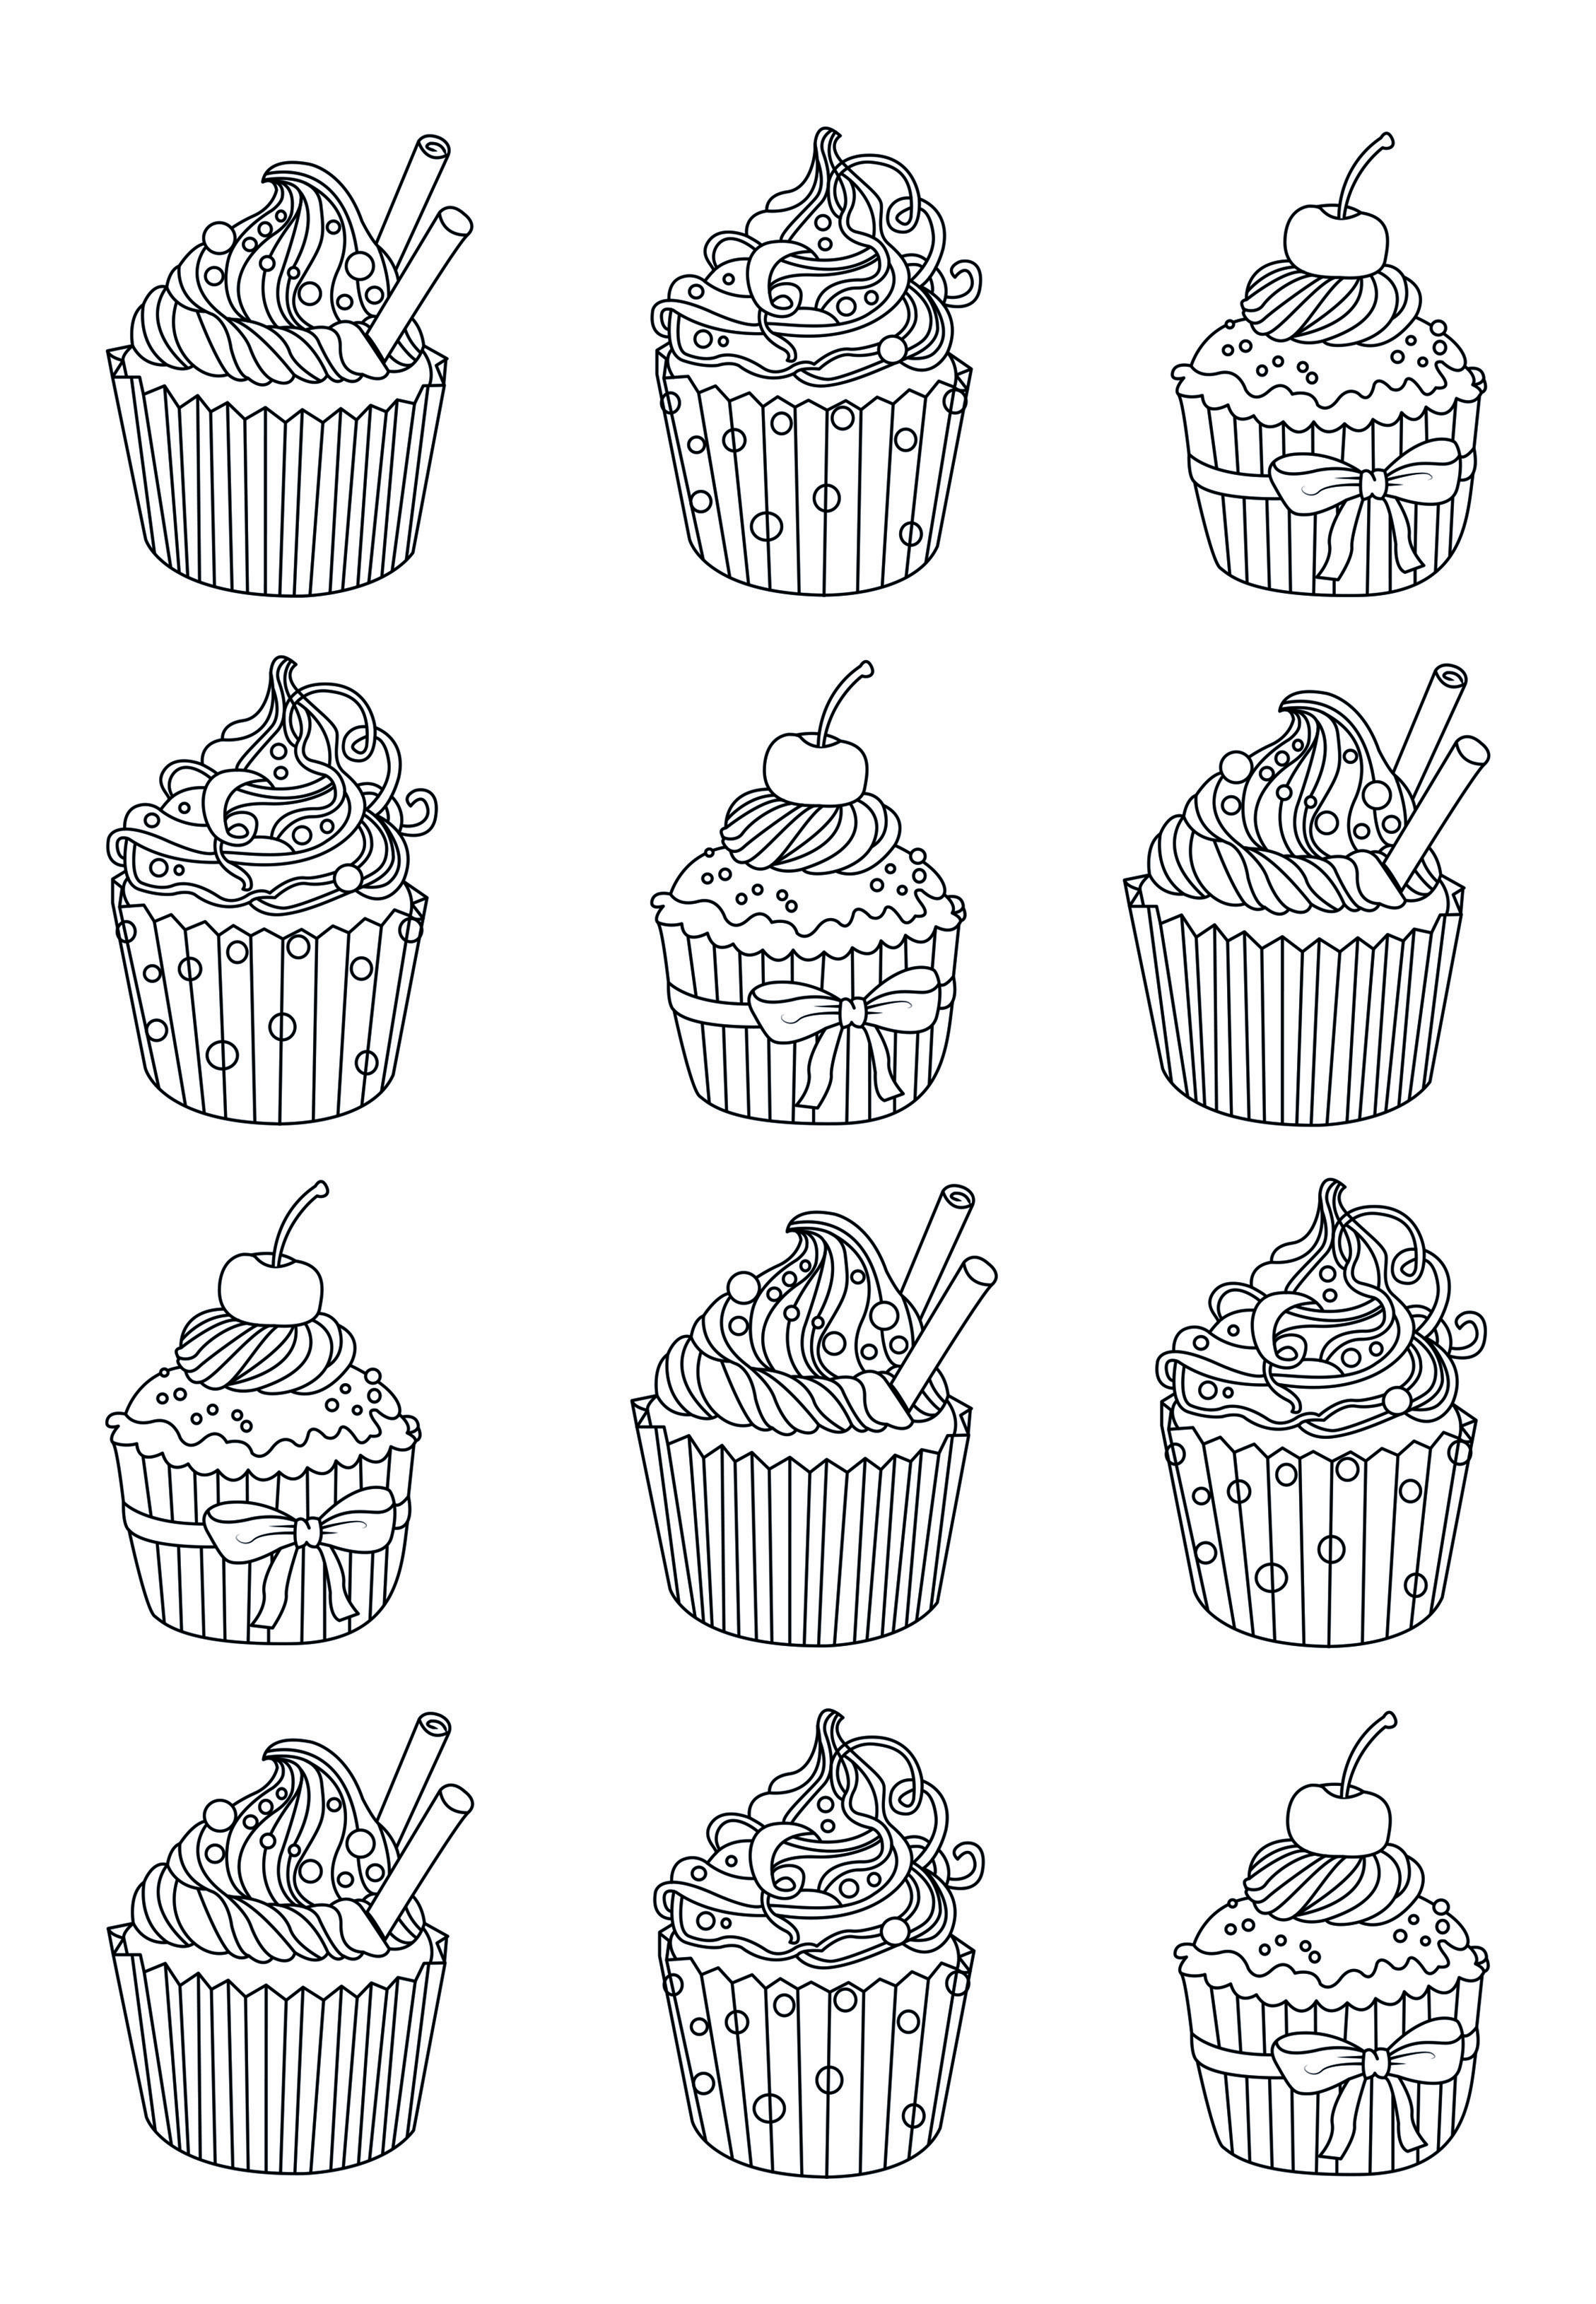 Yum Yum Many Coloring Page Easy To Colors And Eat From The Gallery Cup Cakesartist Cel Cupcake Coloring Pages Food Coloring Pages Easy Coloring Pages